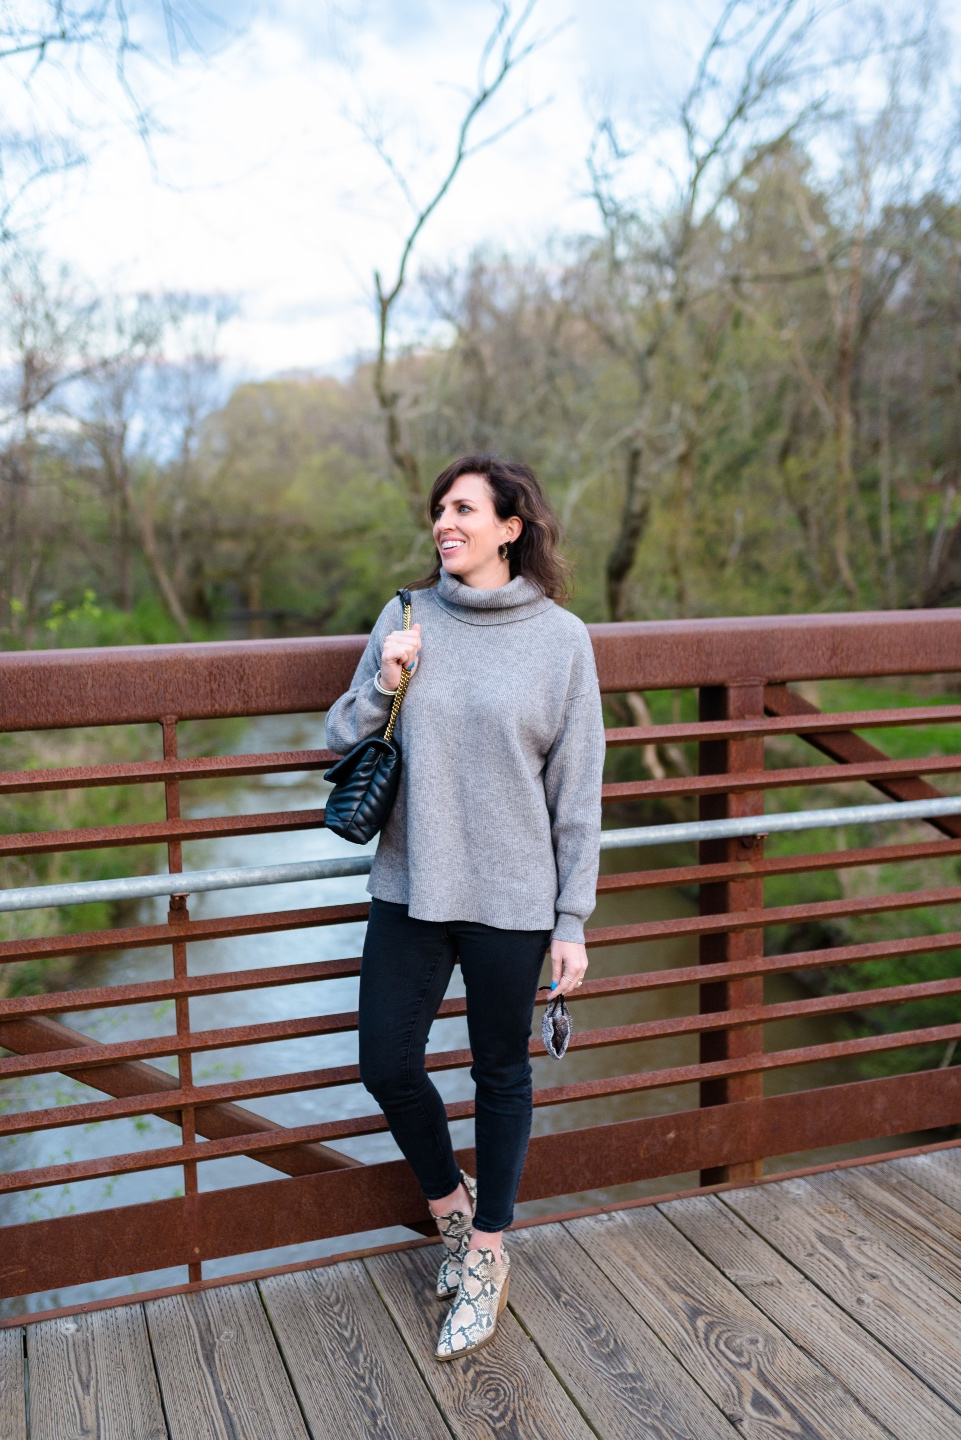 An Update on My North Carolina 100 County Tour - I'm Fixin' To - @imfixintoblog | Things to do in North Carolina by popular NC travel blog, I'm Fixin' To: image of a woman wearing a grey turtle neck sweater, black leggings, and snake print ankle boots while standing on a bridge.